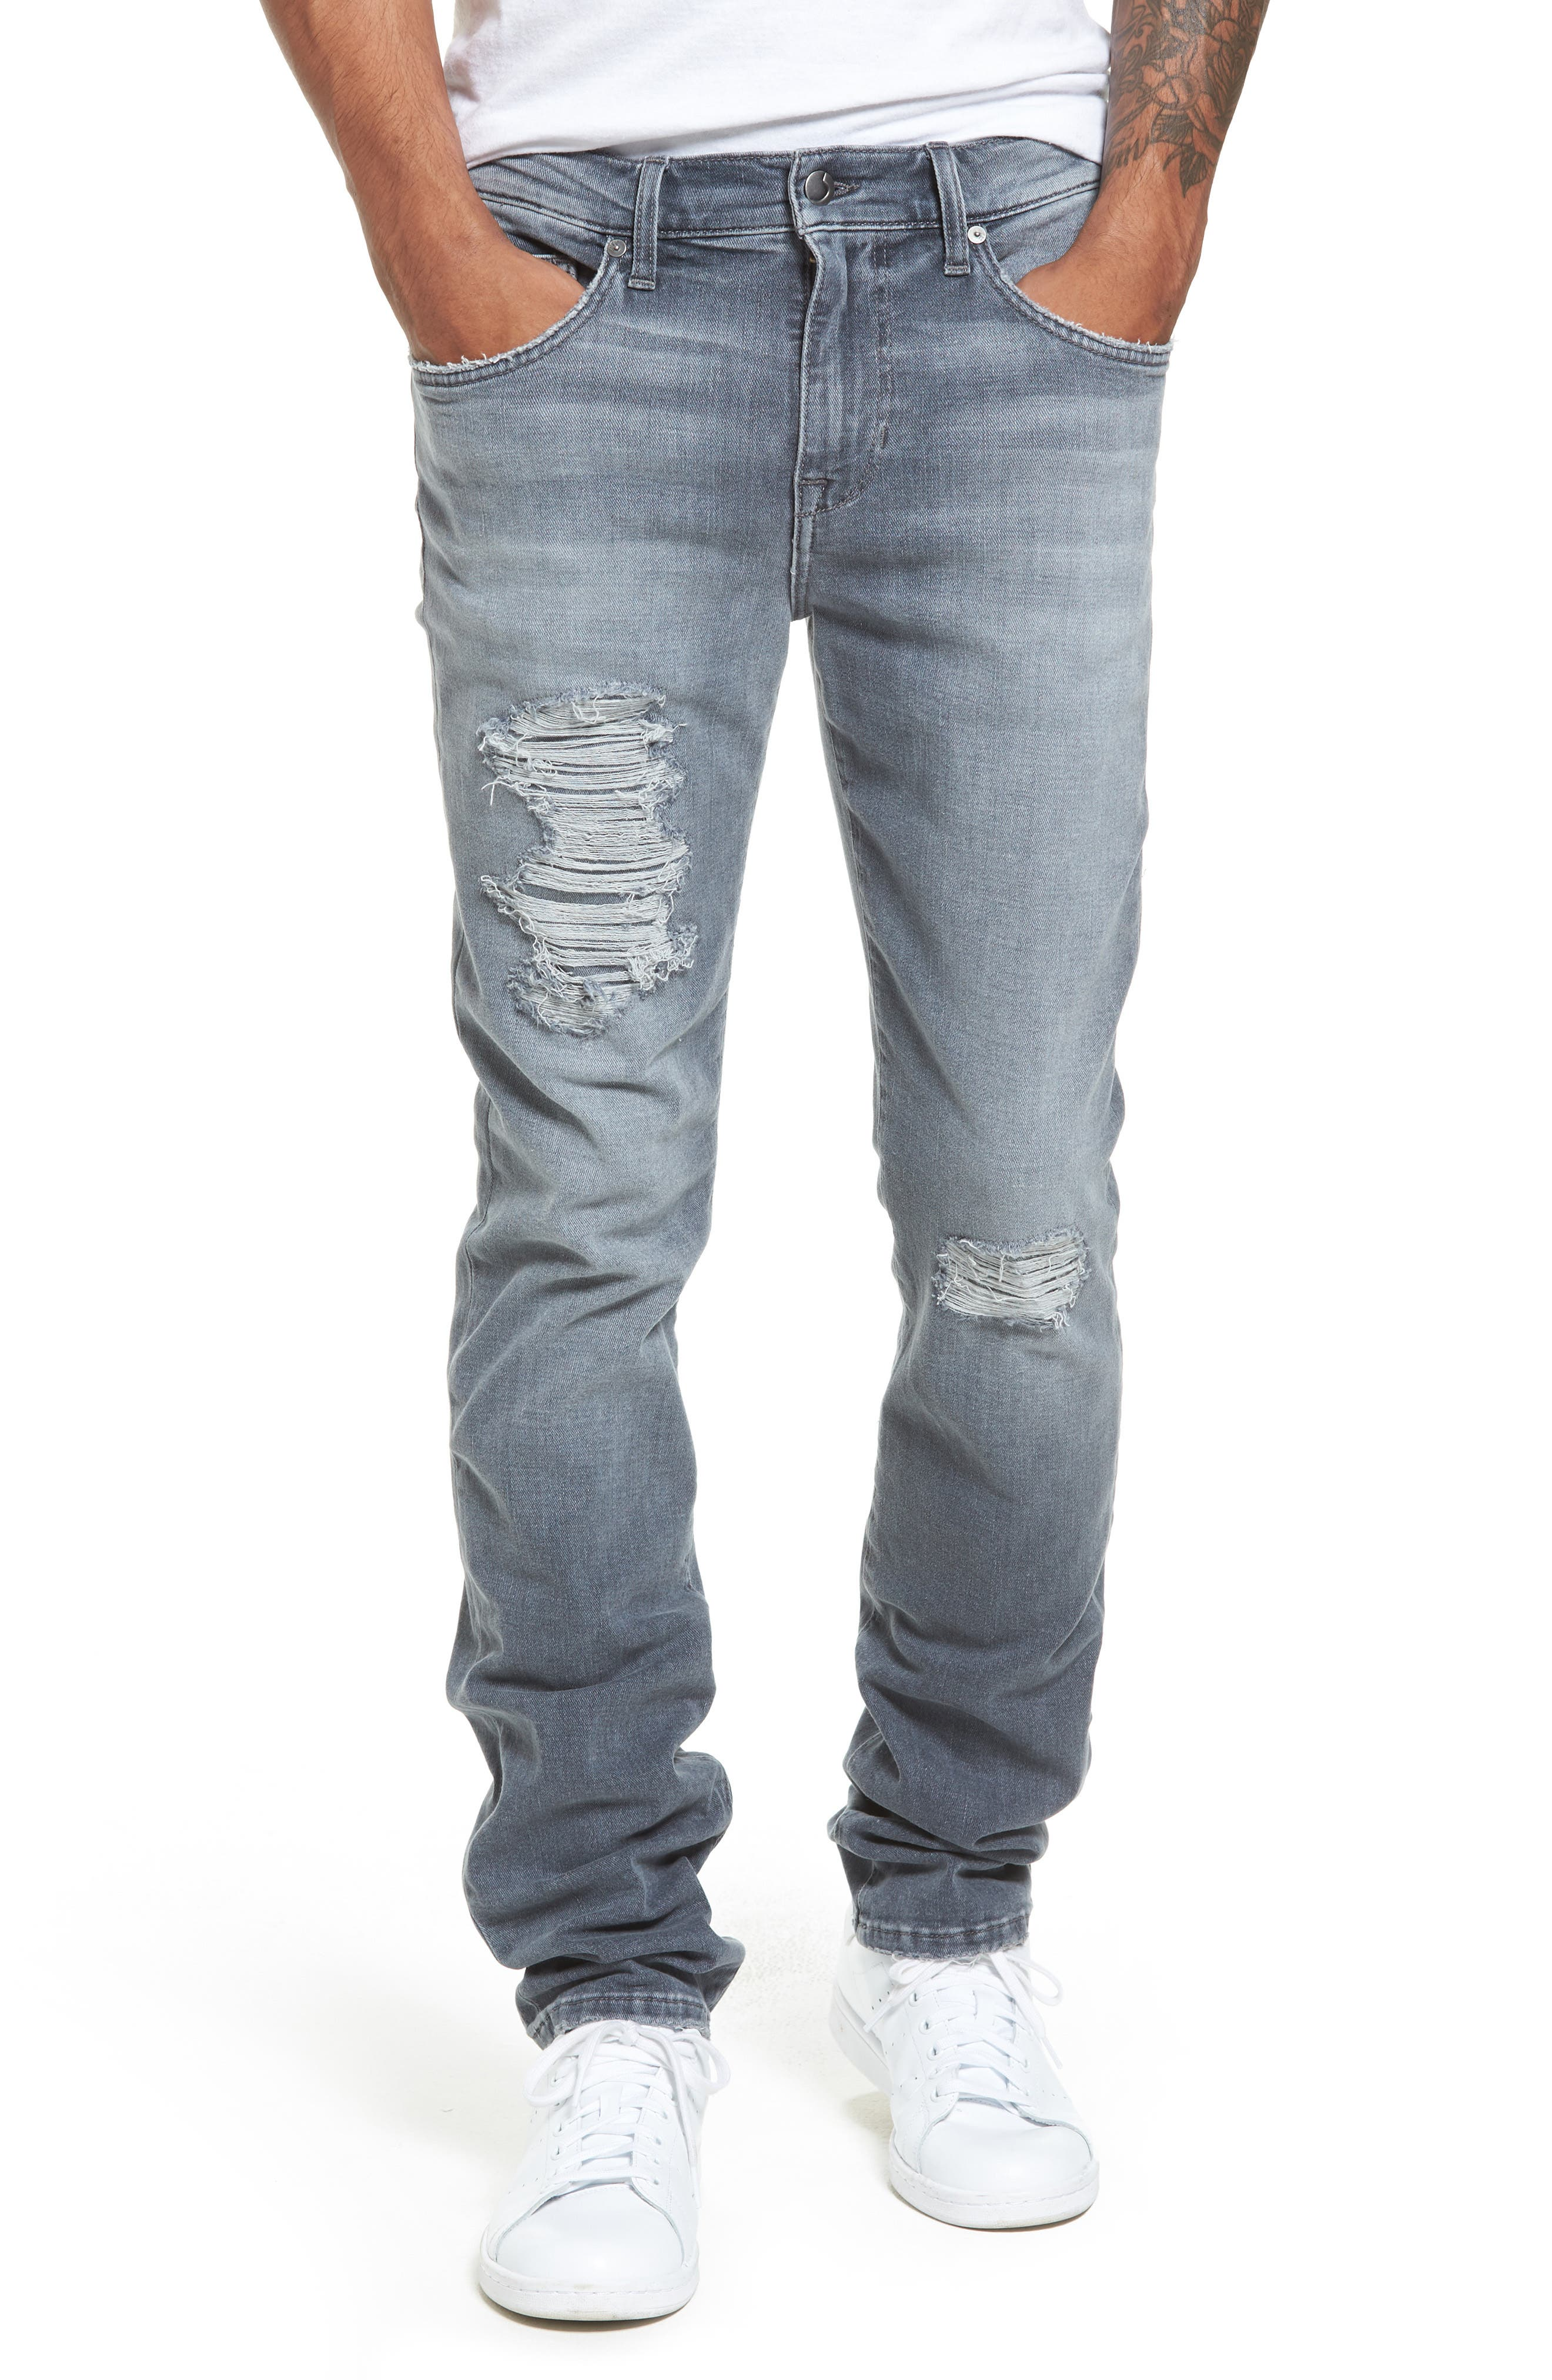 Brixton Distressed Slim Straight Fit Jeans,                             Main thumbnail 1, color,                             051